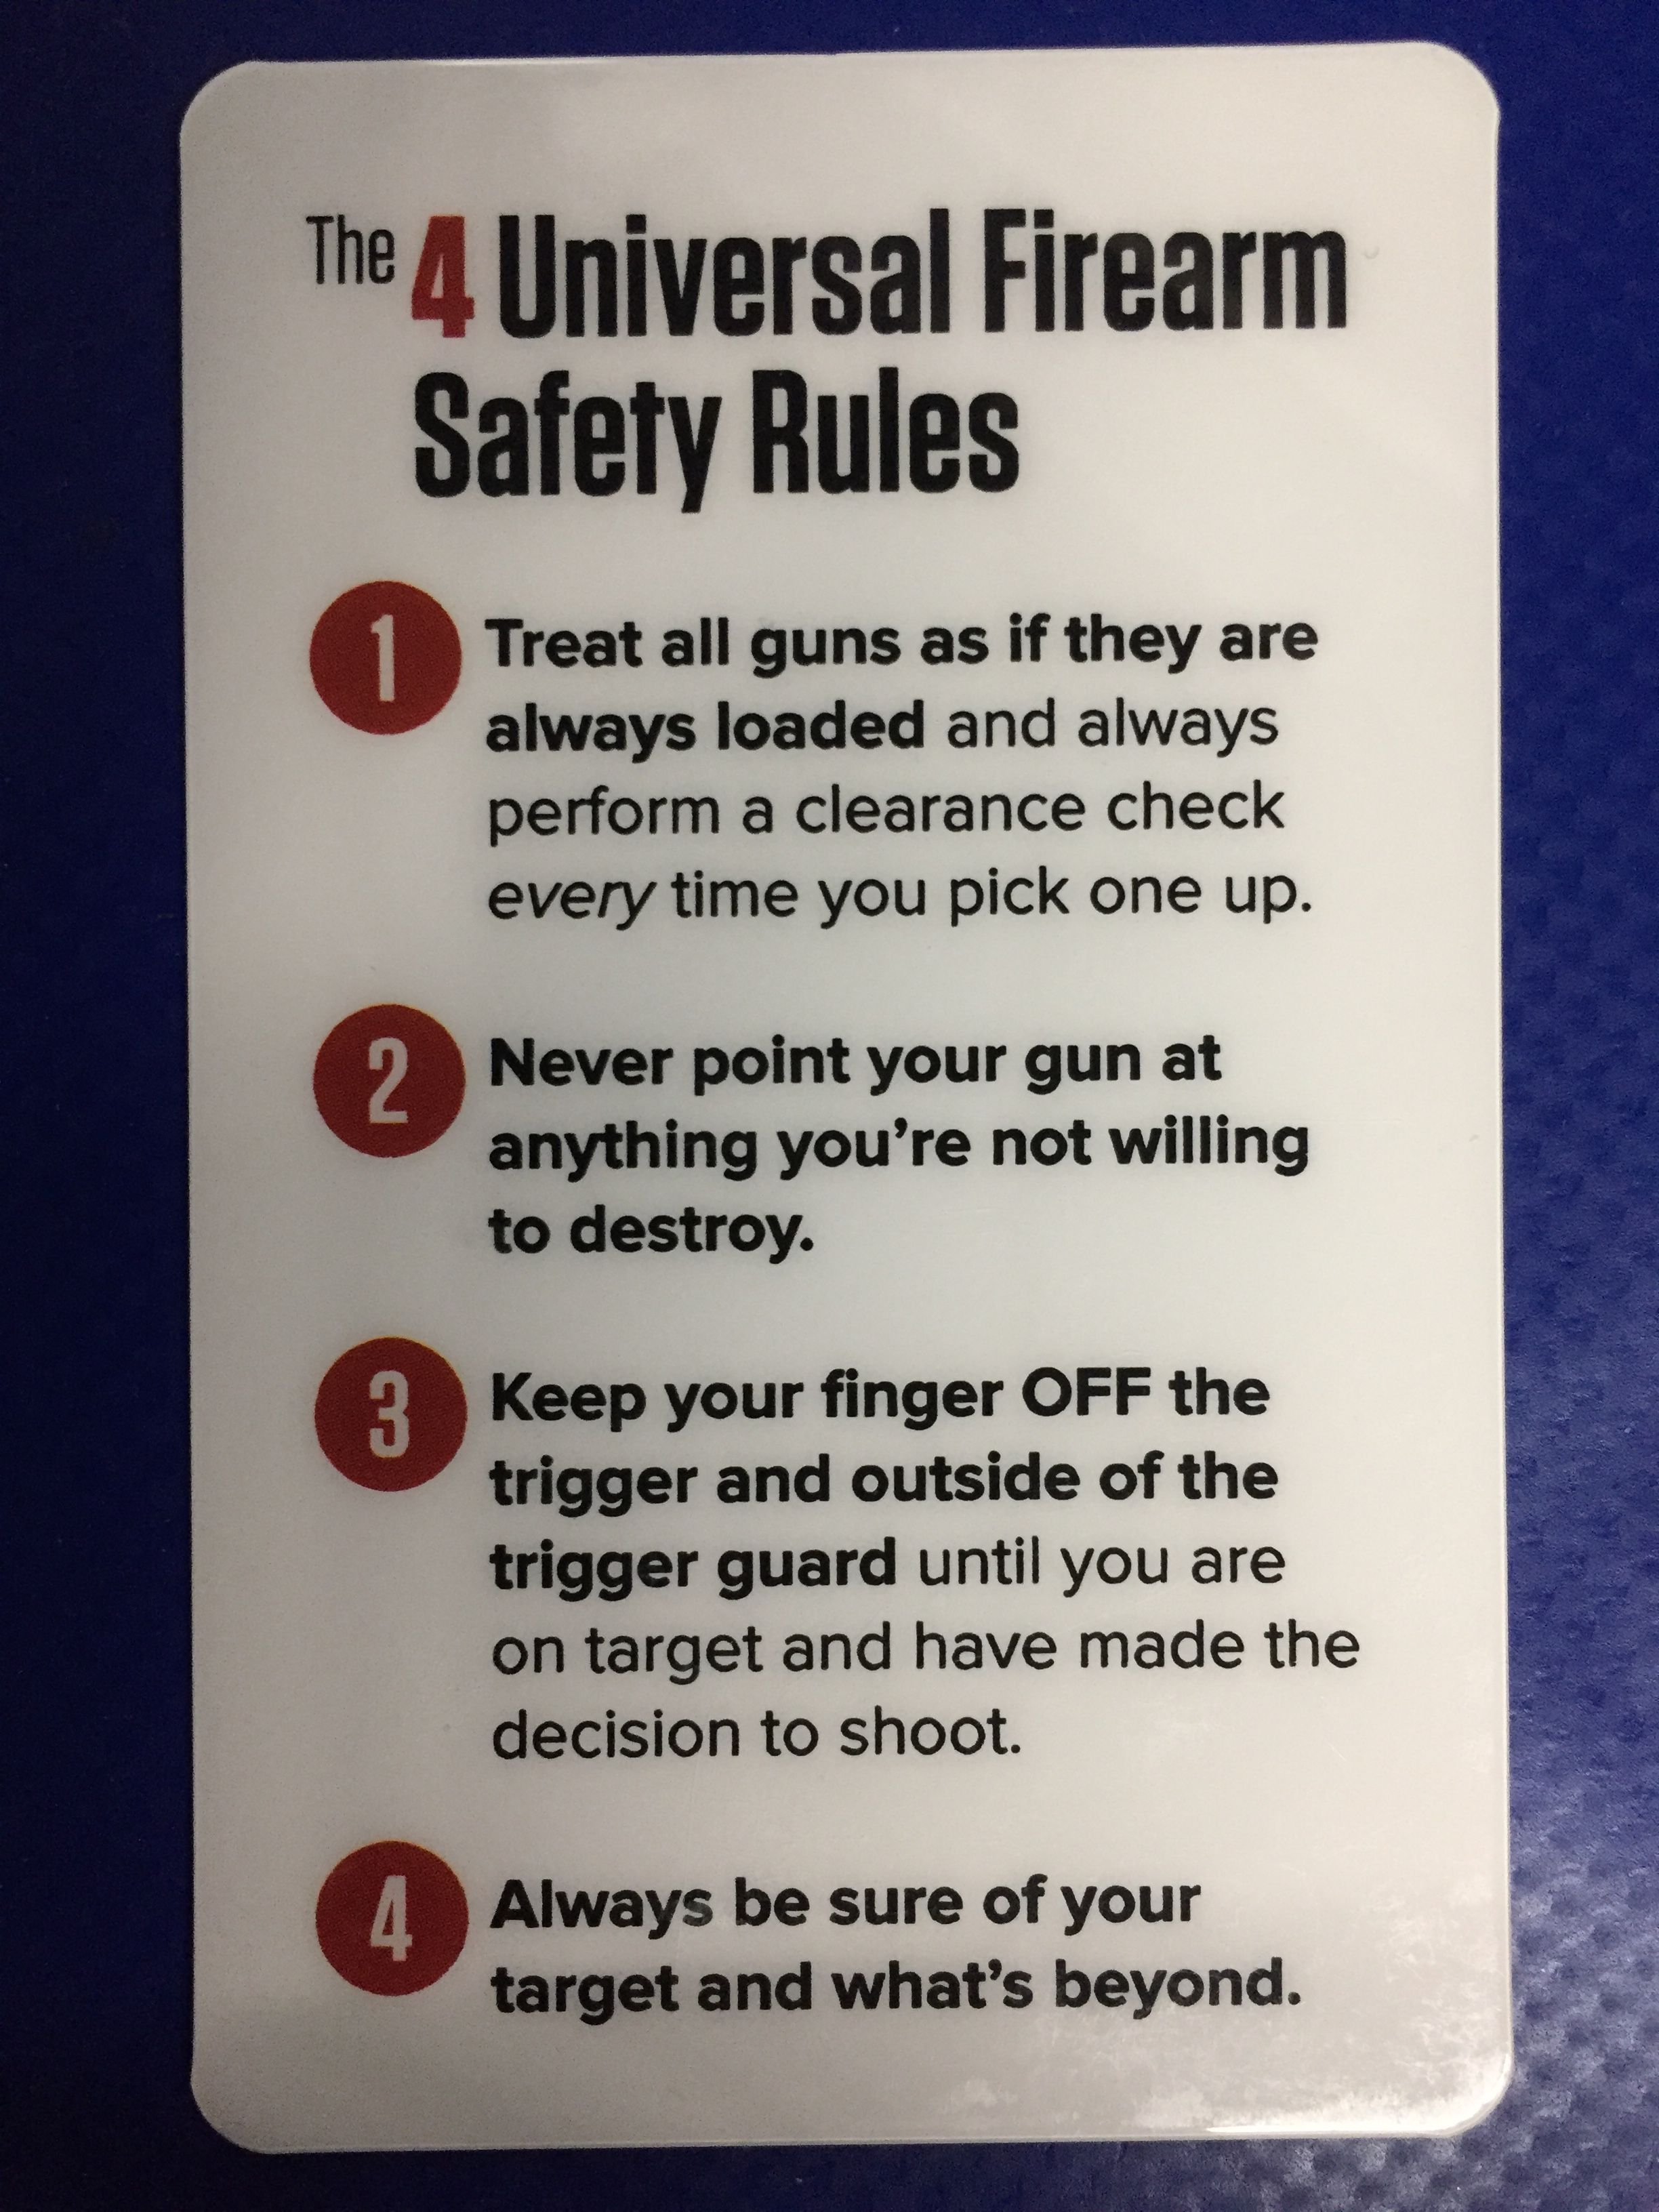 Pin by Armando D. Liban on Firearms and Safety